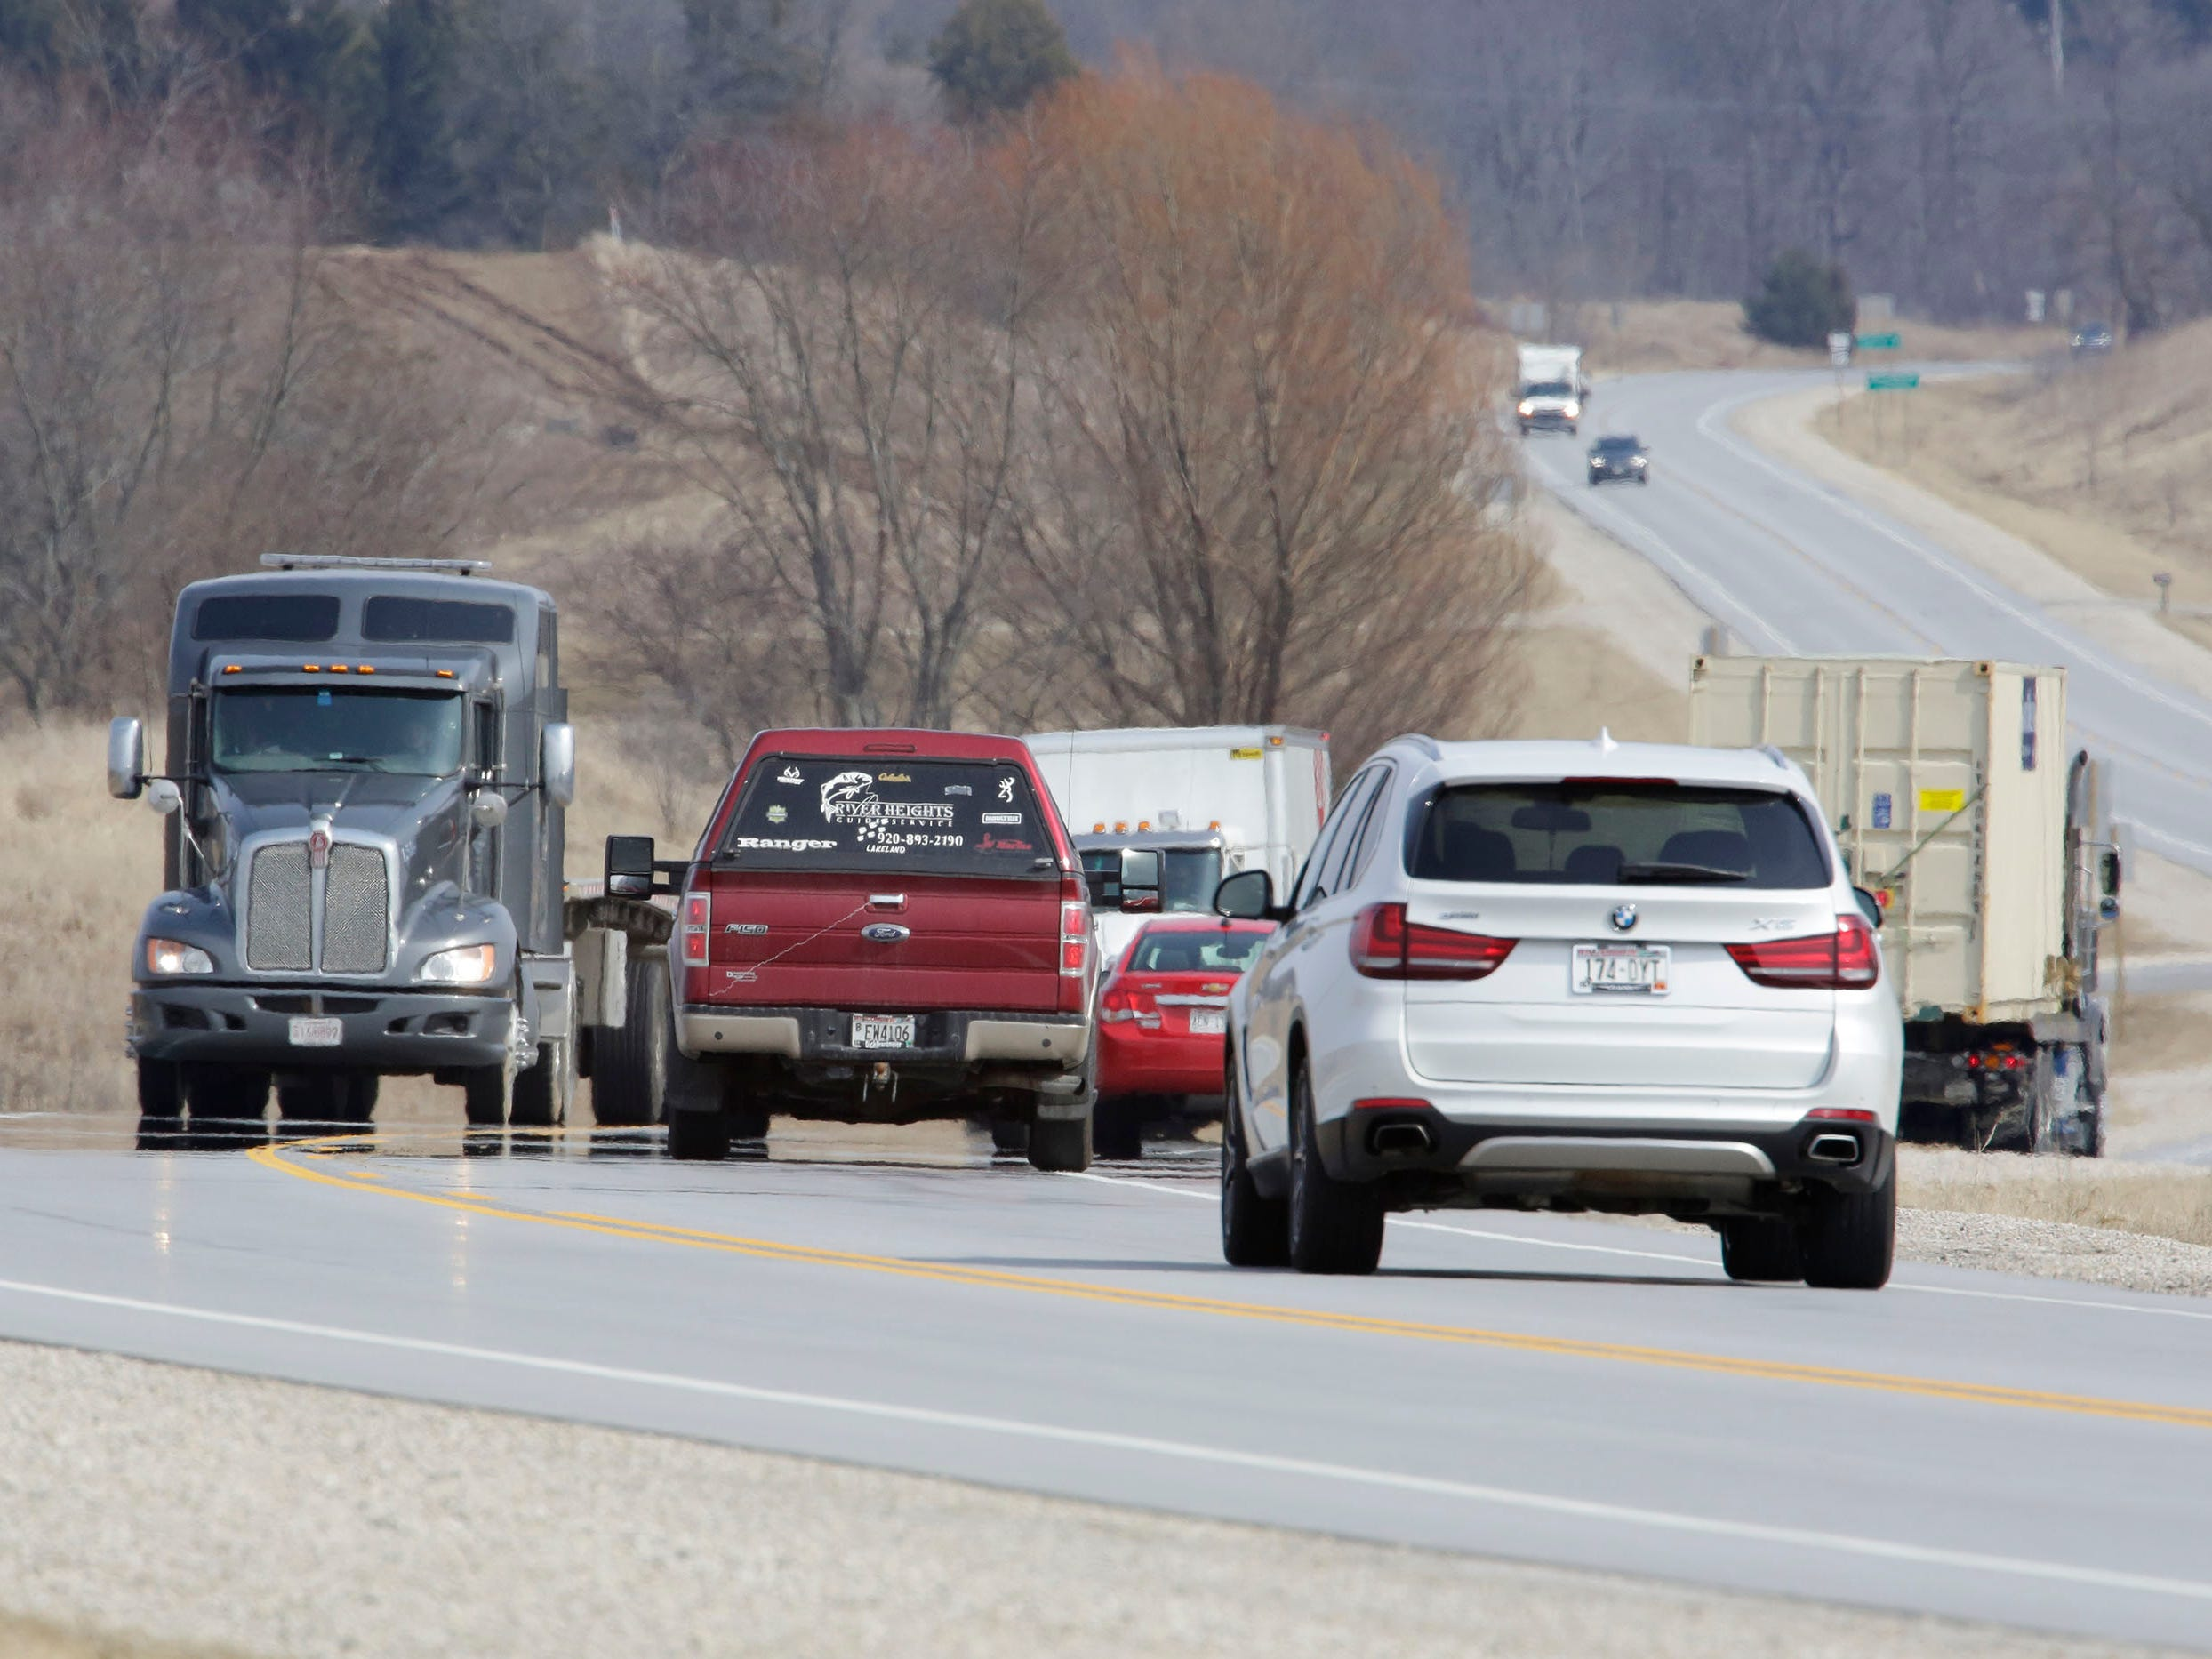 Vehicles travel on state Highway 23, Wednesday, March 27, 2019, near Greenbush, Wis.